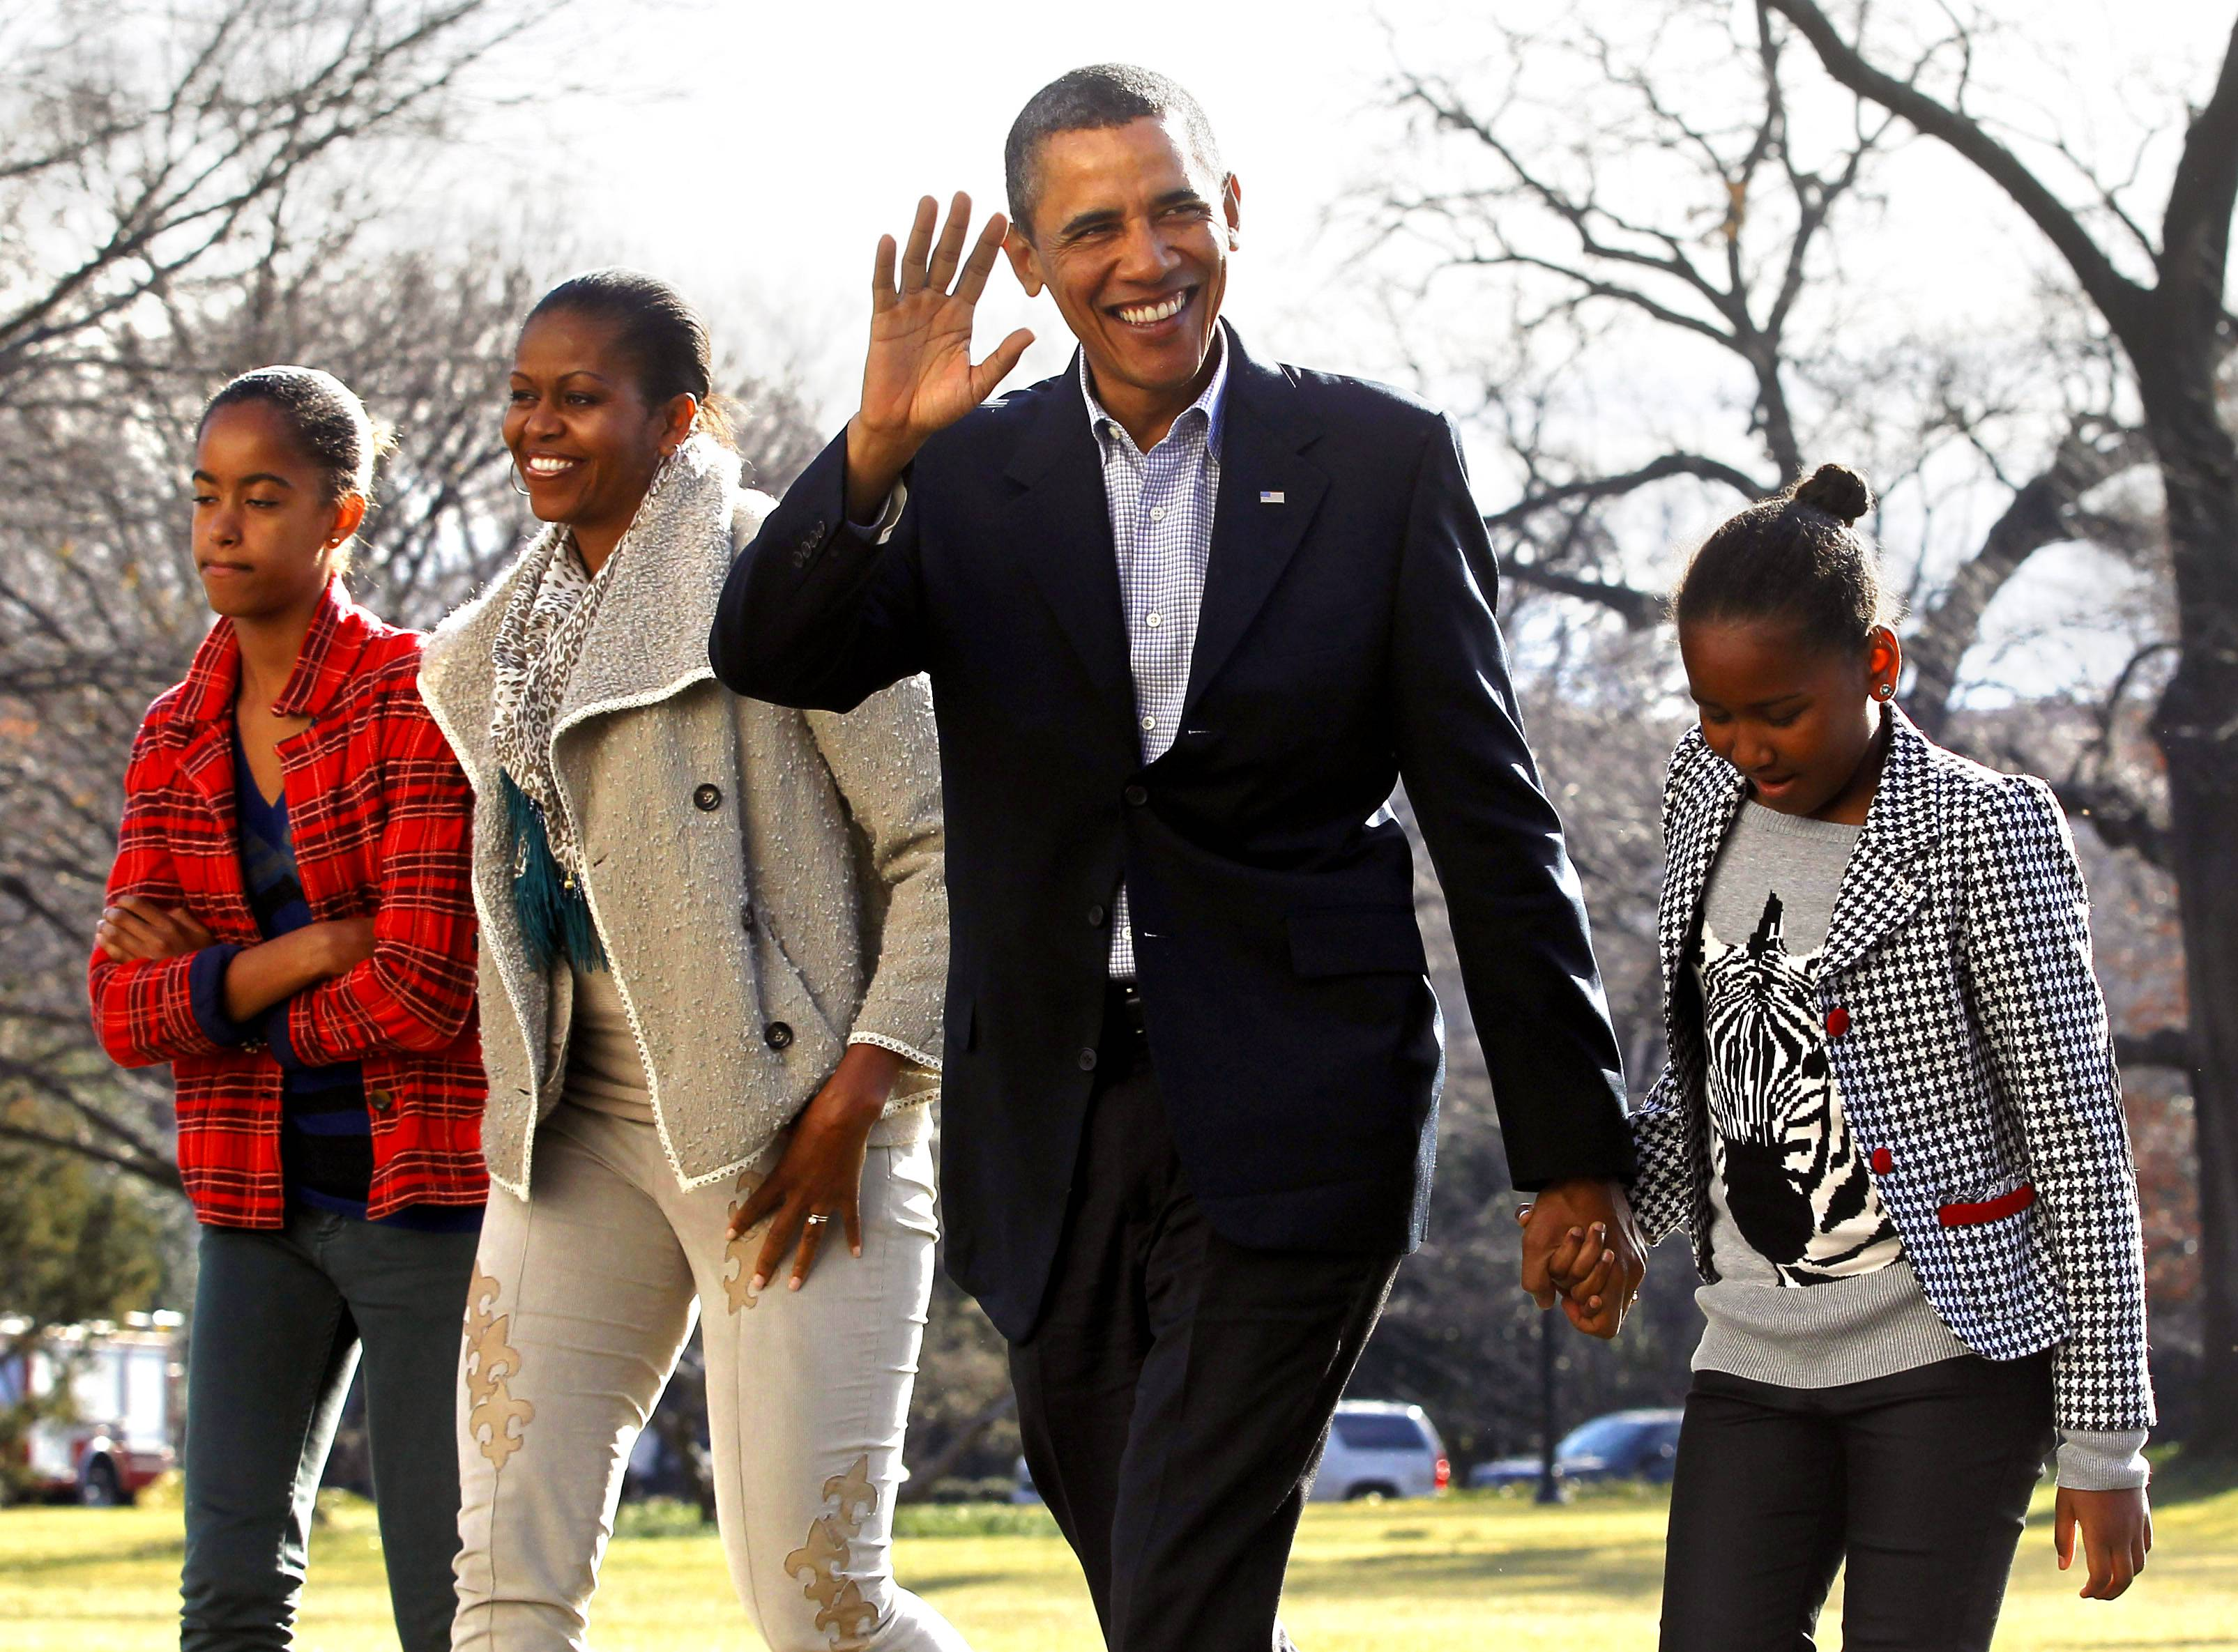 """President Barack Obama - """"If we want our children to succeed in life, we need fathers to step up. We need fathers to understand that their work doesn?t end with conception?that what truly makes a man a father is the ability to raise a child and invest in that child.""""(Photo: REUTERS/Jason Reed)"""